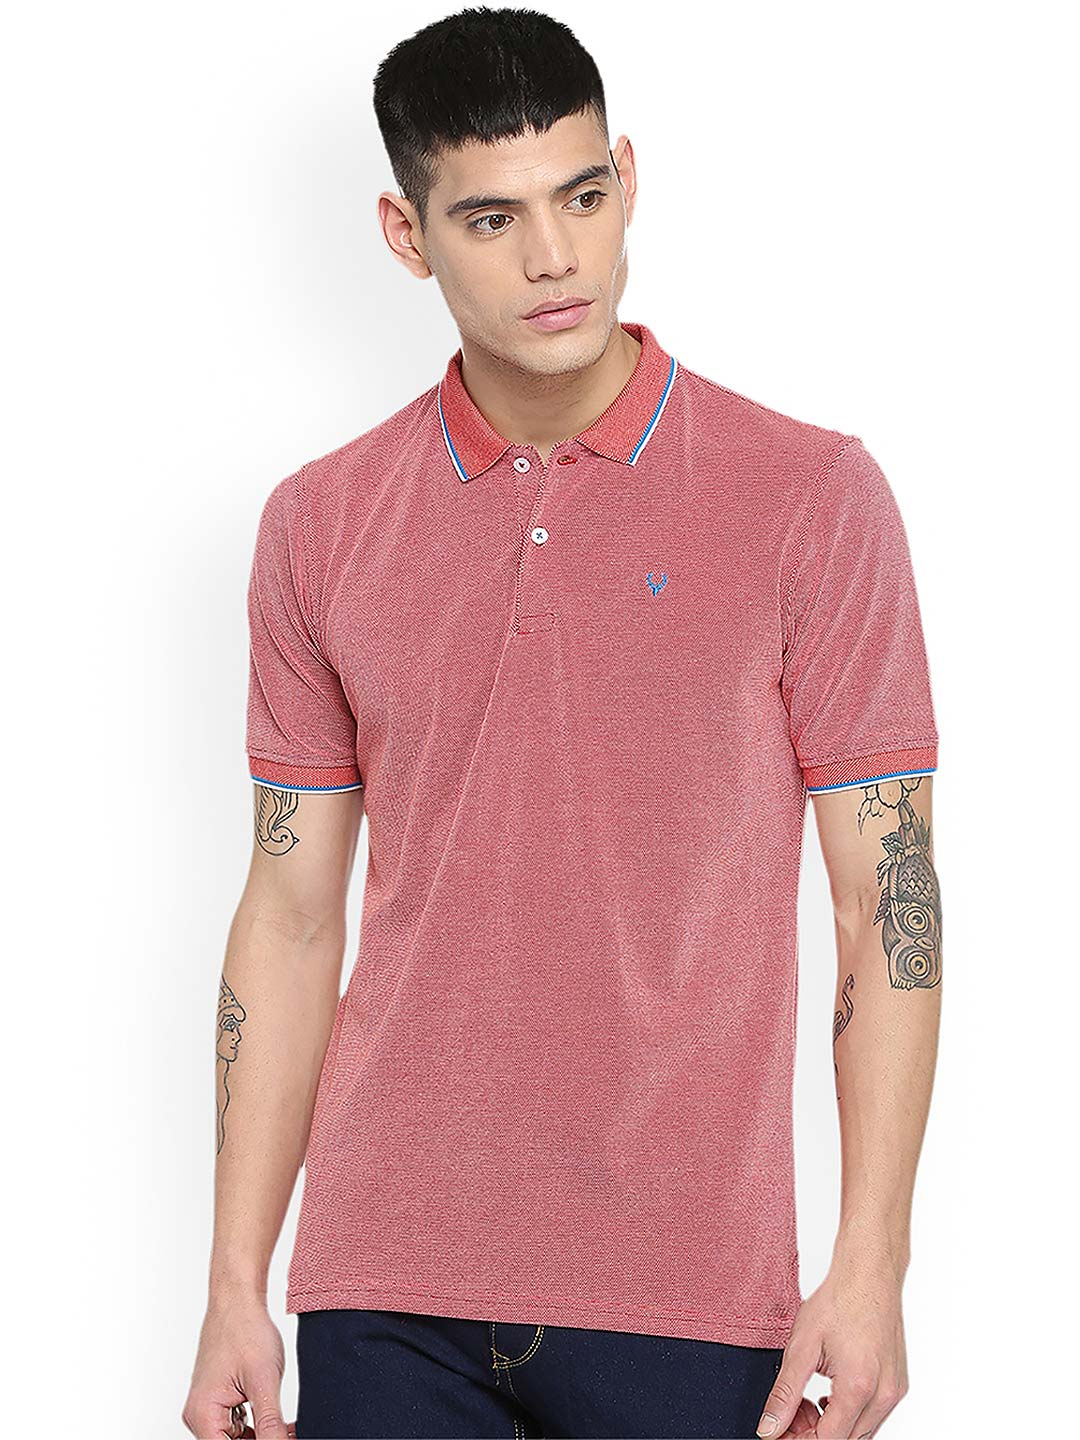 Allen Solly pink solid polo t-shirt?imgeng=w_400